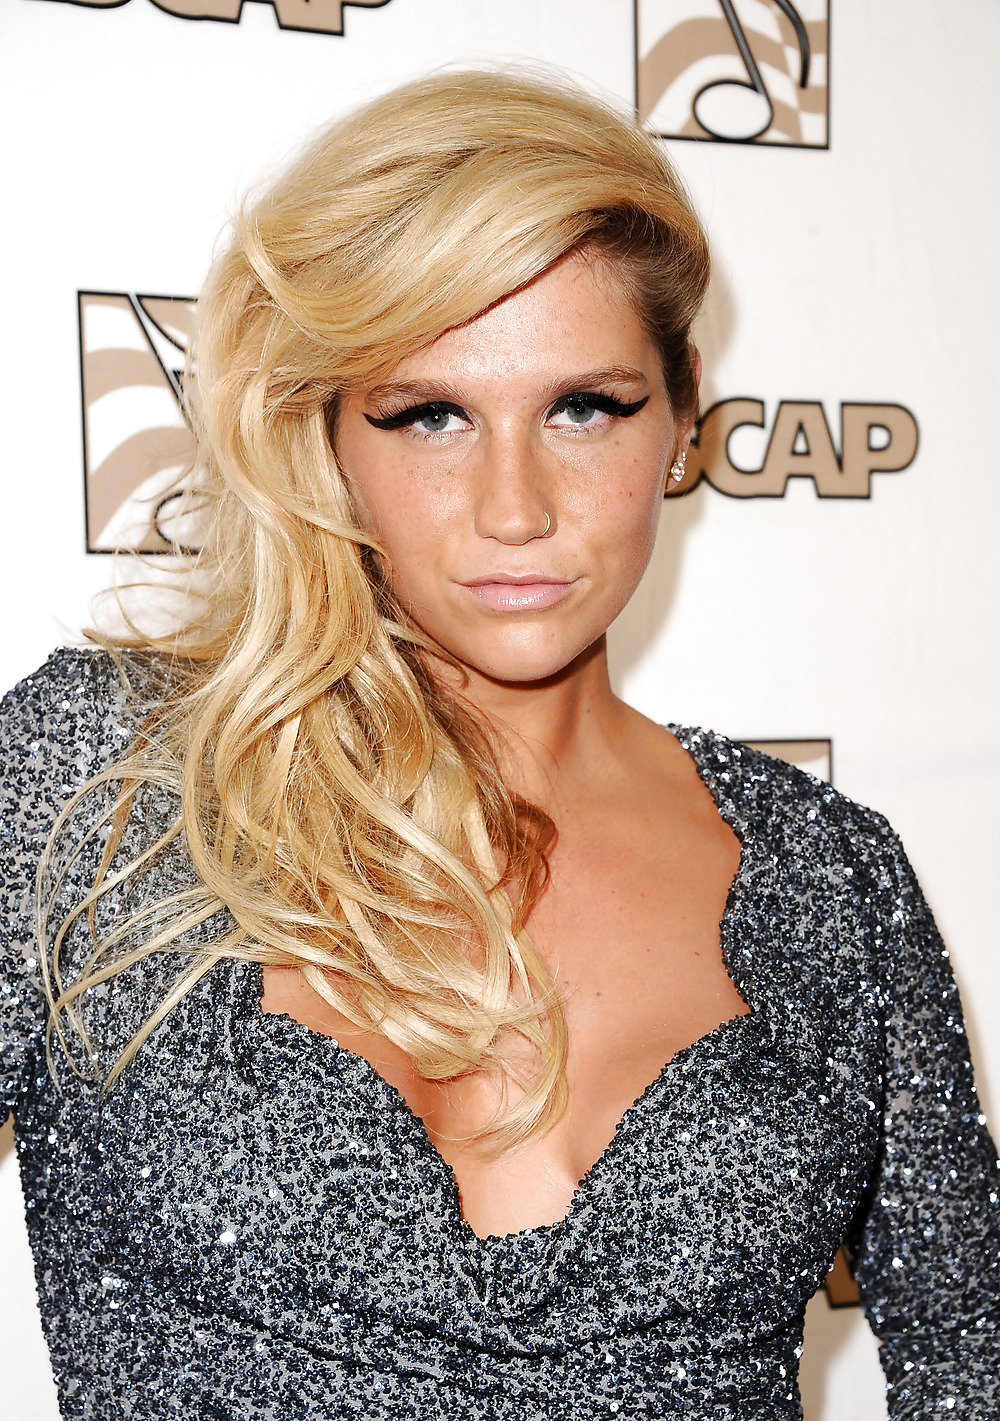 pictures-of-kesha-having-sex-young-naked-russian-boy